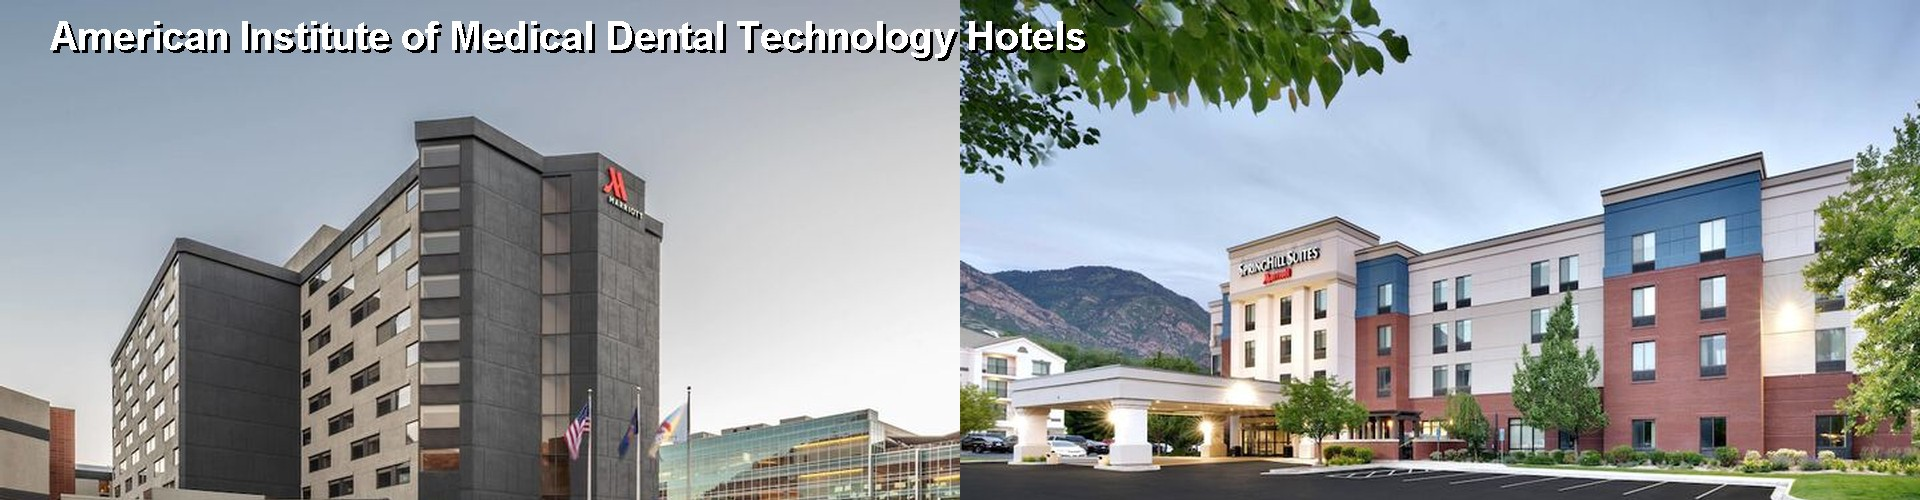 5 Best Hotels near American Institute of Medical Dental Technology